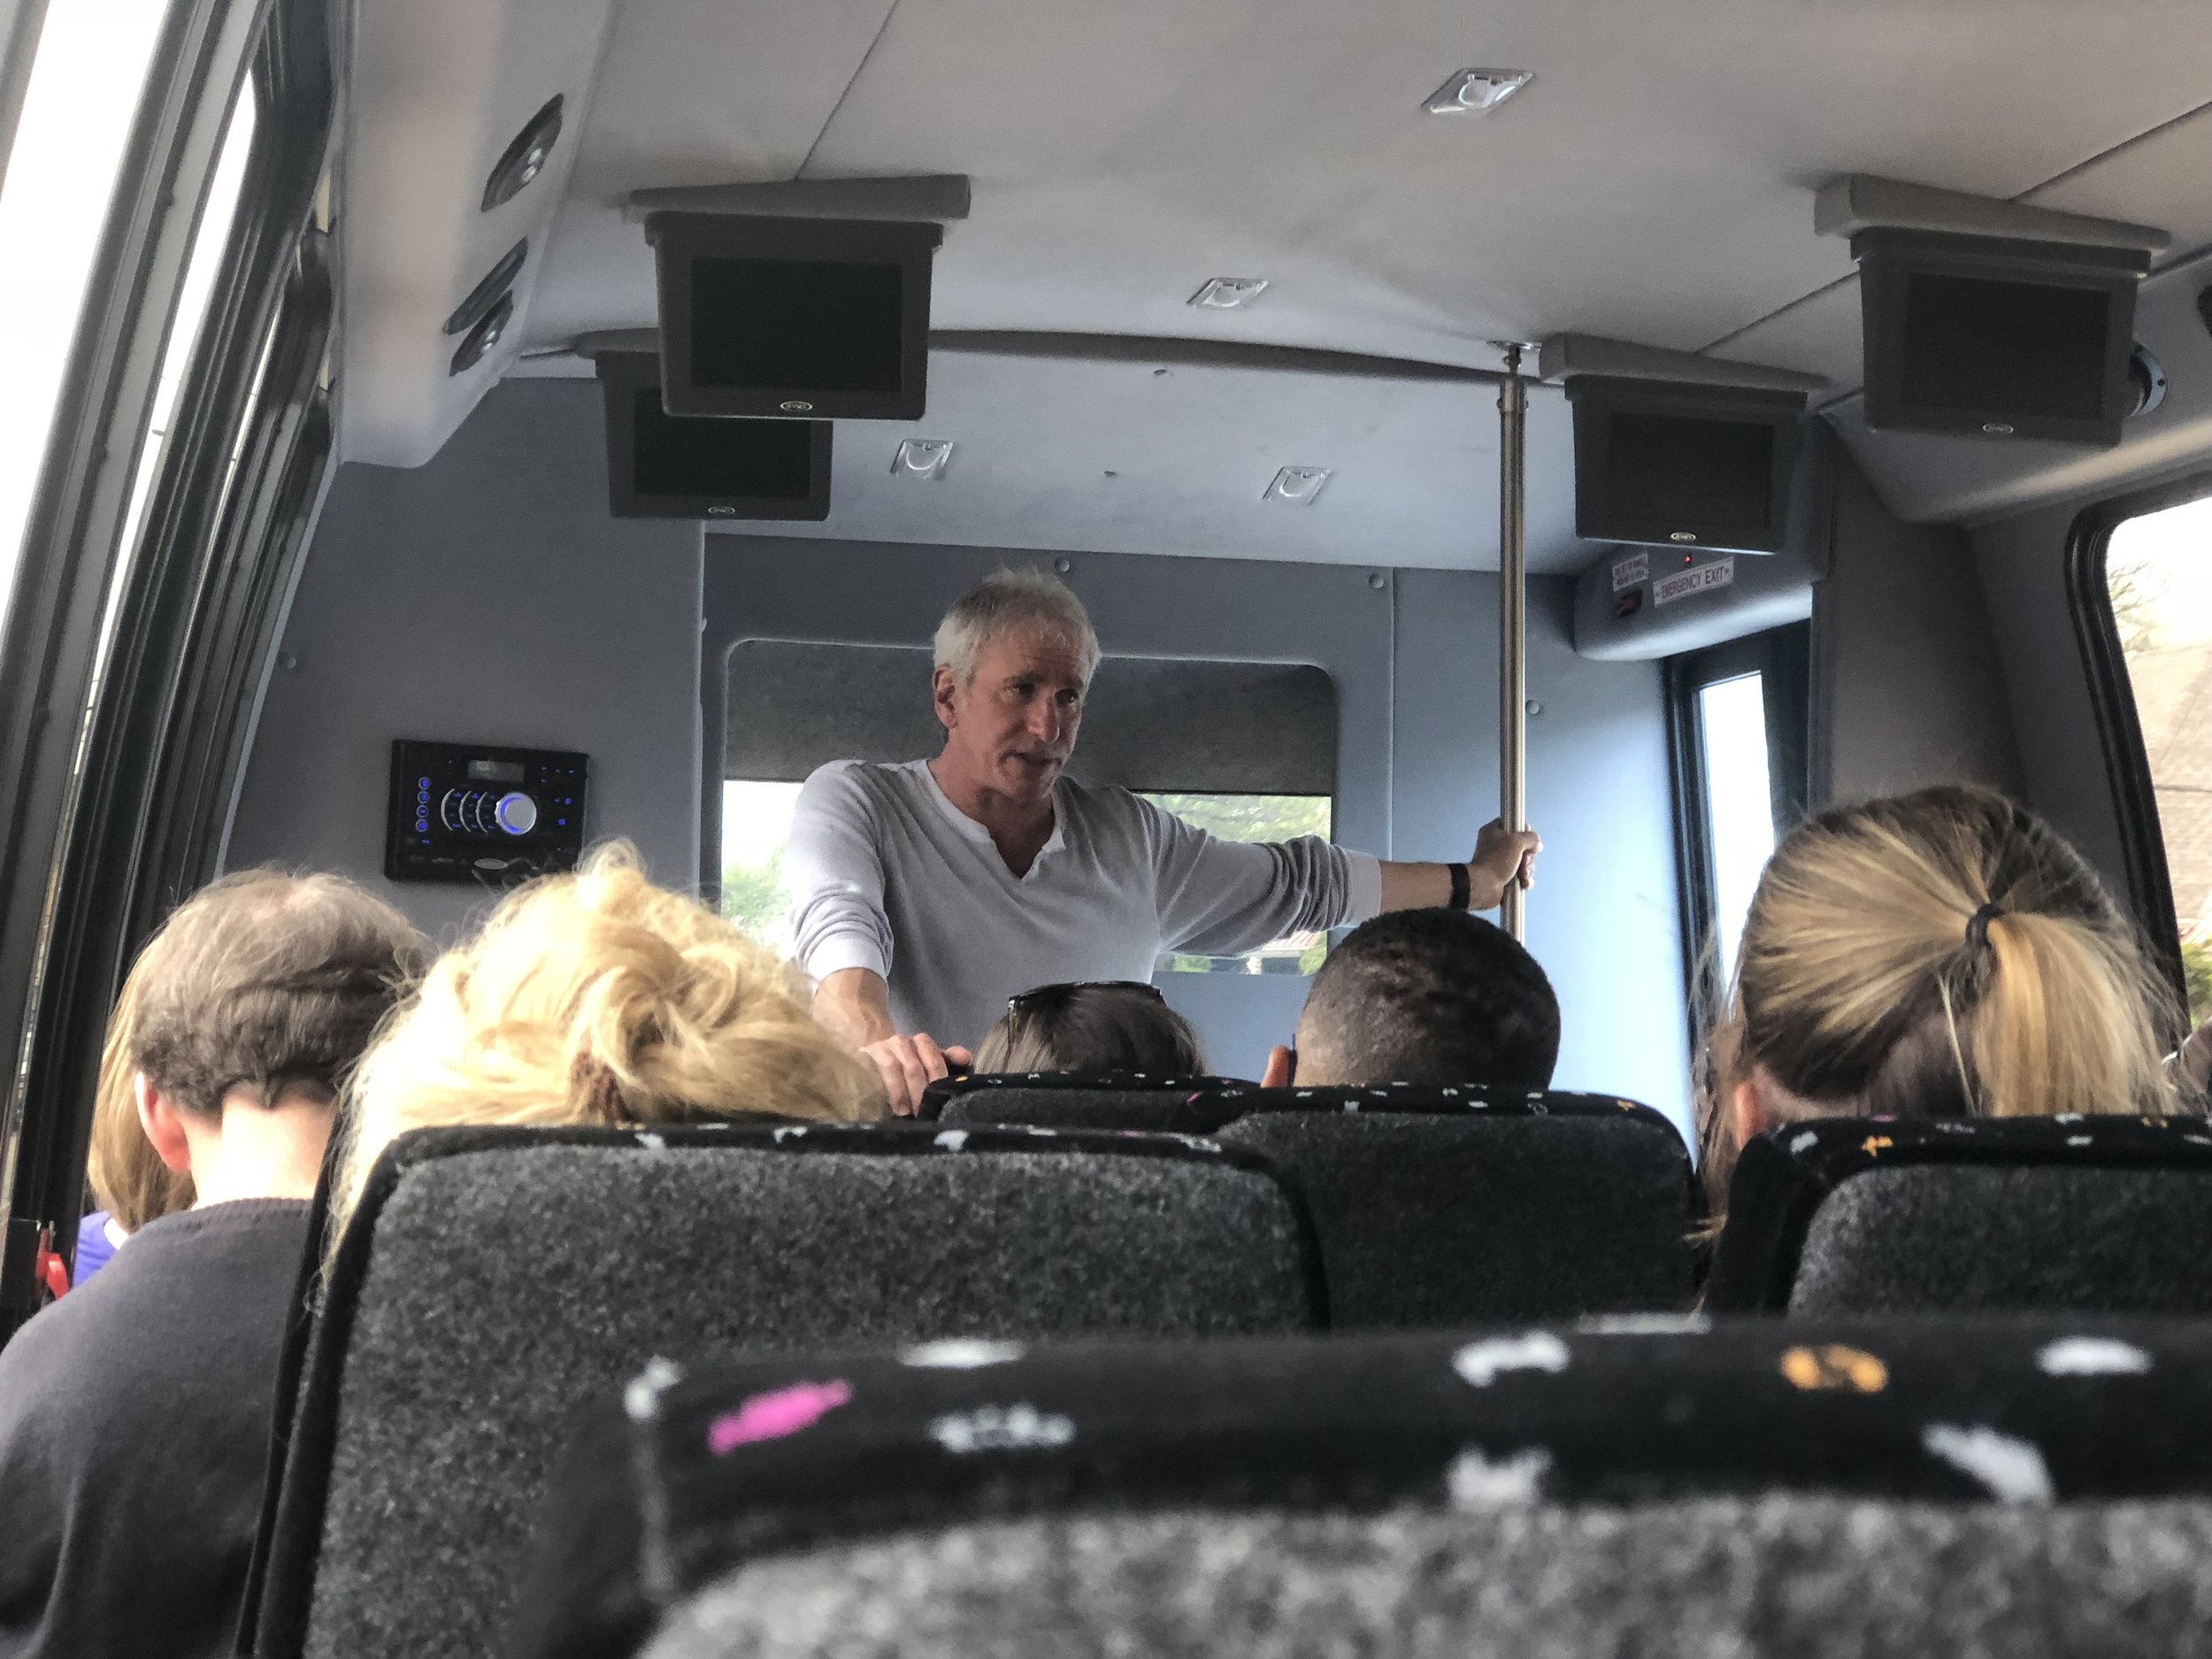 Cliff doesn't stop enriching you with knowledge. Carrying on through breakfast, lunch and dinner. Even the bus journey was filled with information .